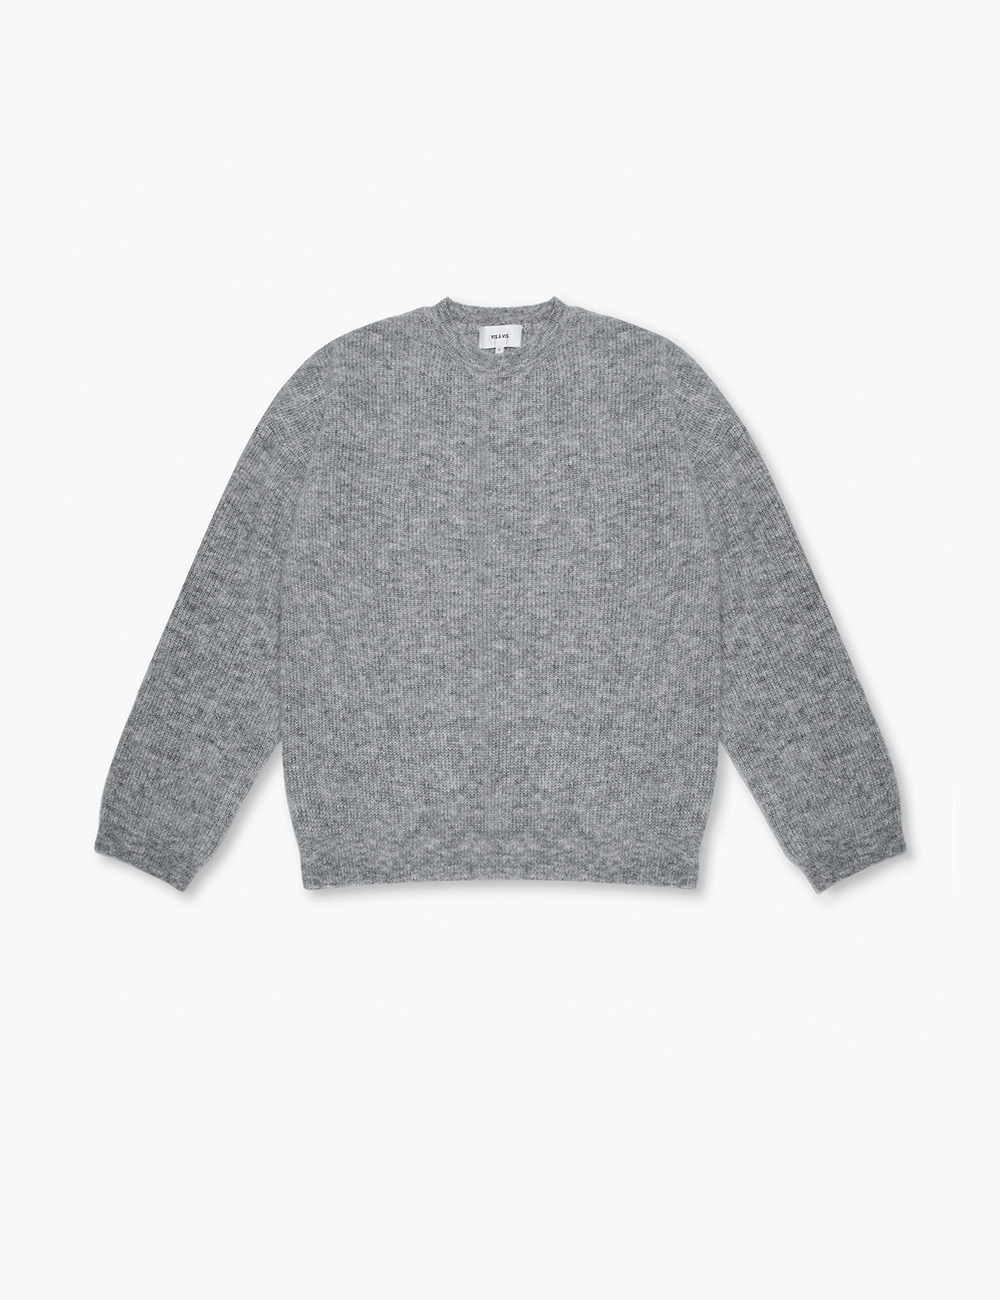 CREW NECK OVERSIZED SWEATER (GRAY)